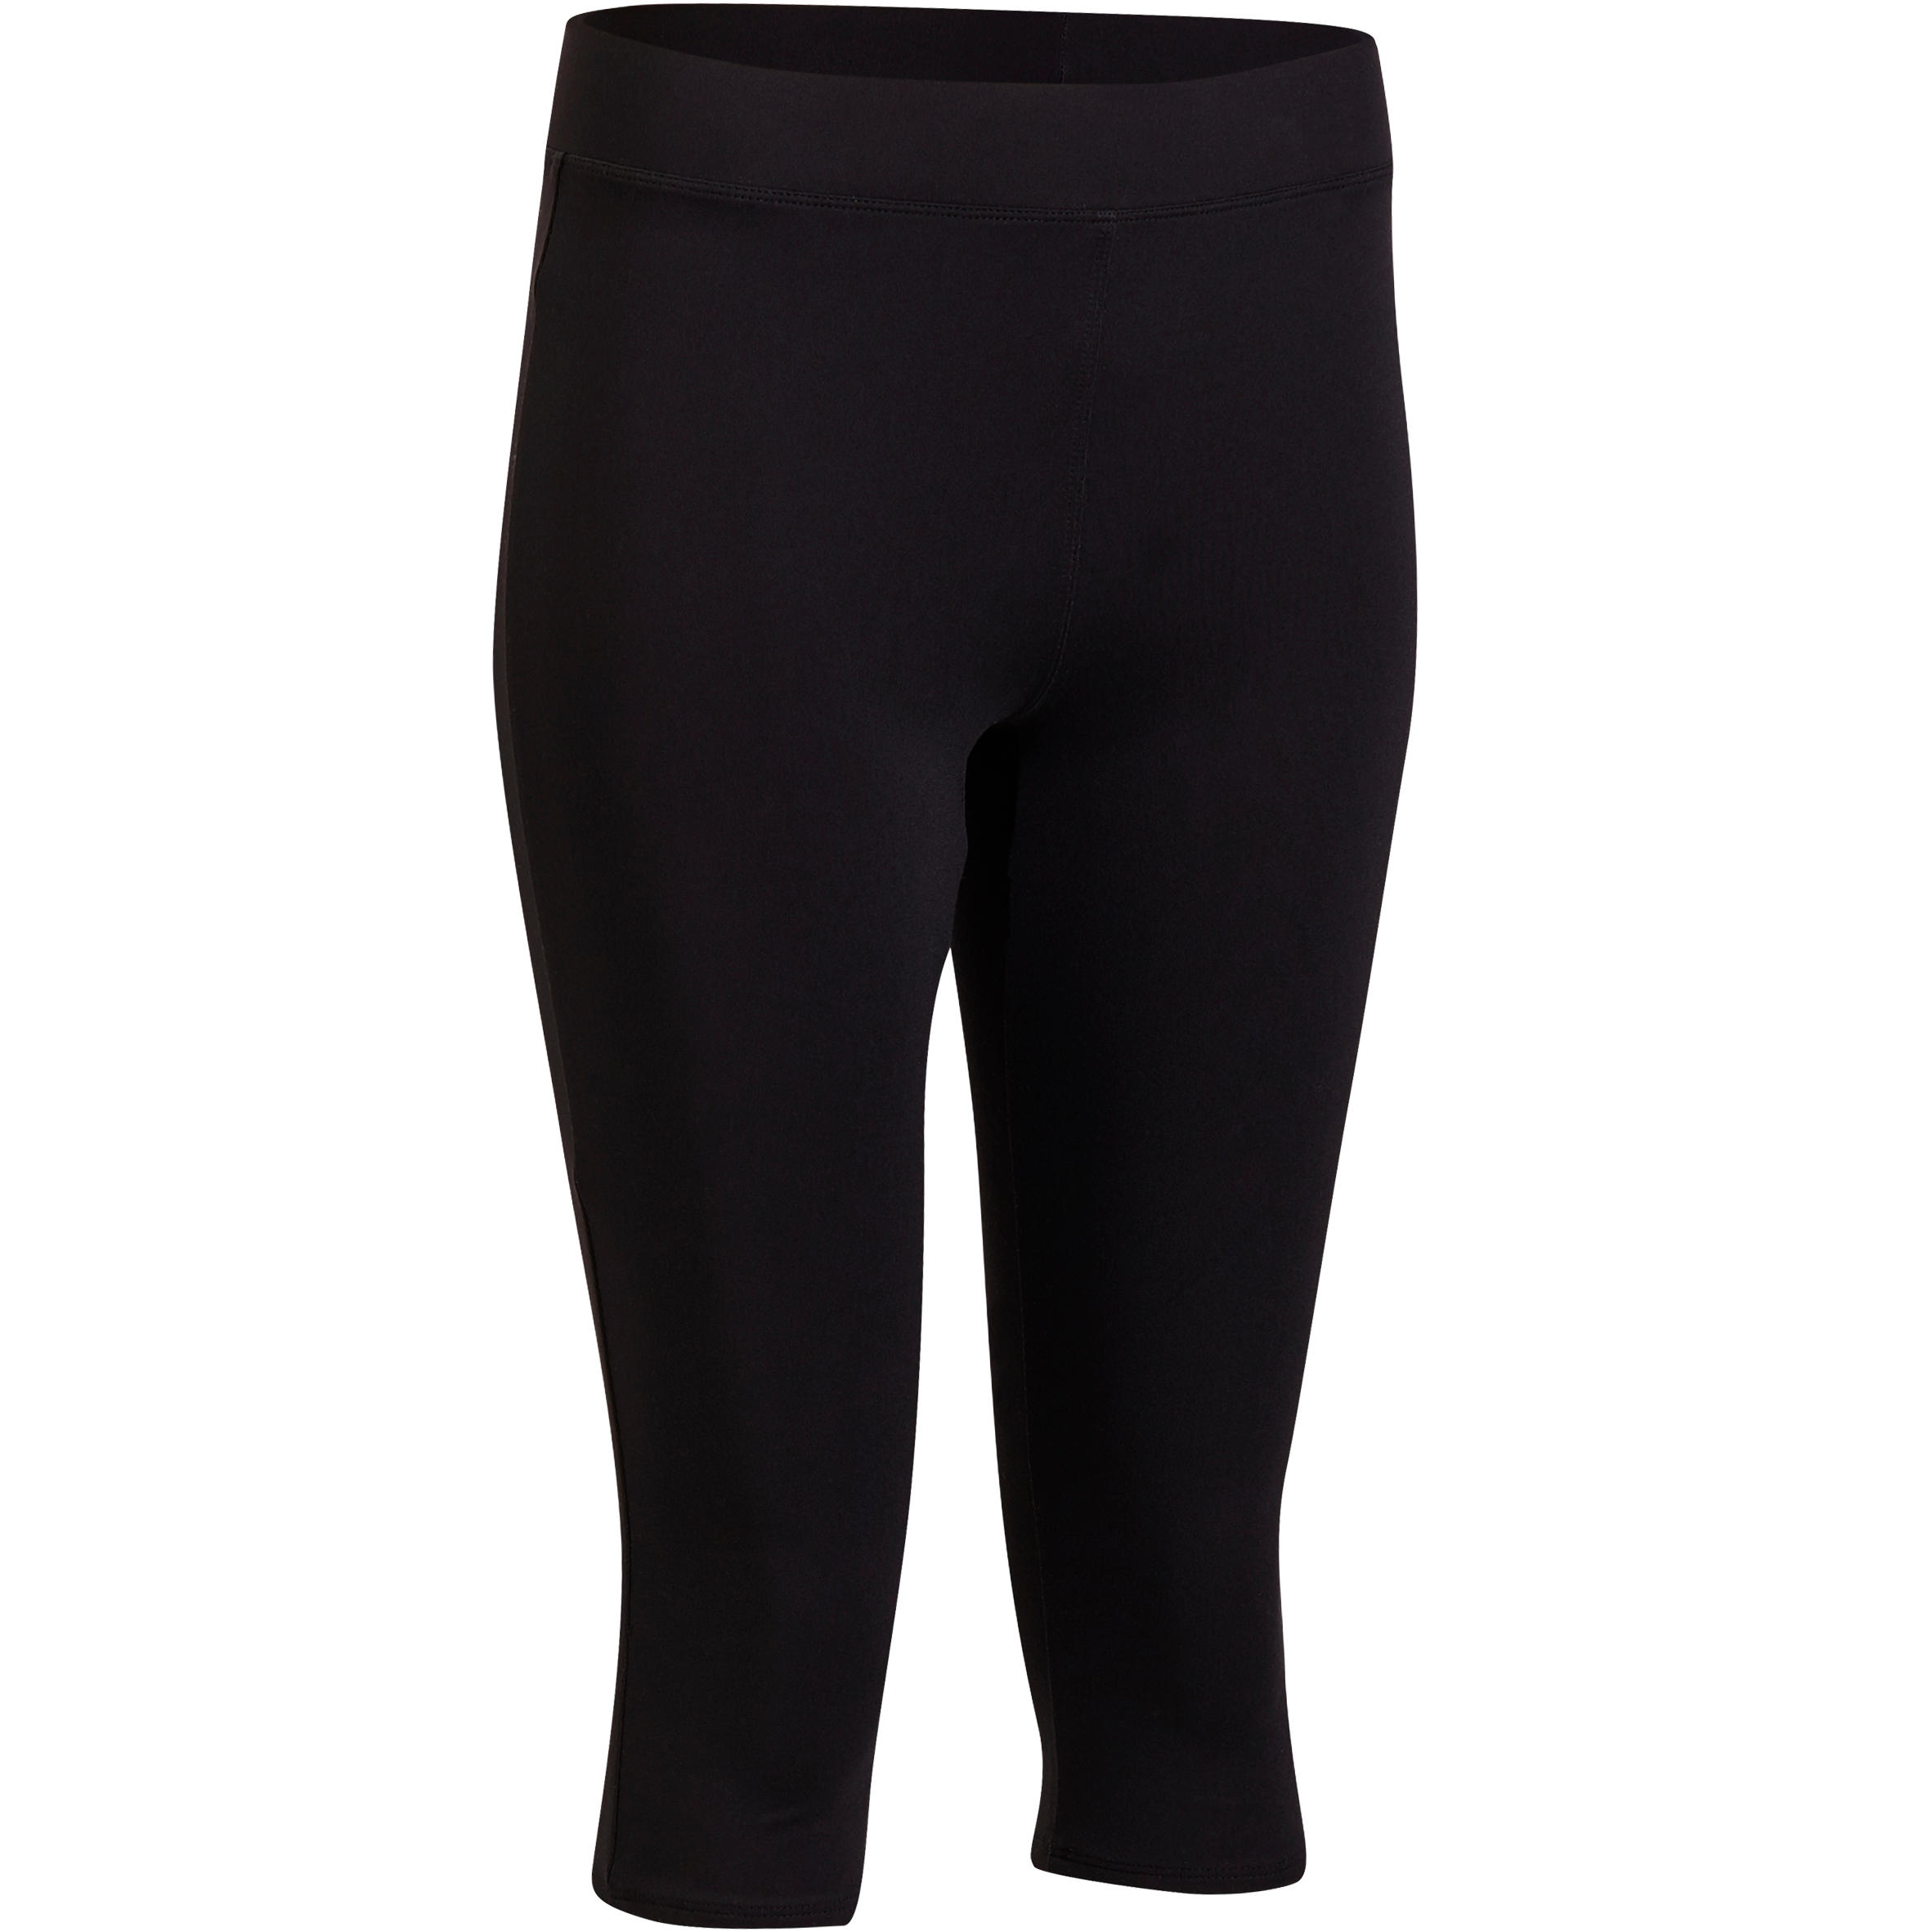 Energy Women's Cardio Fitness Cropped Bottoms - Black